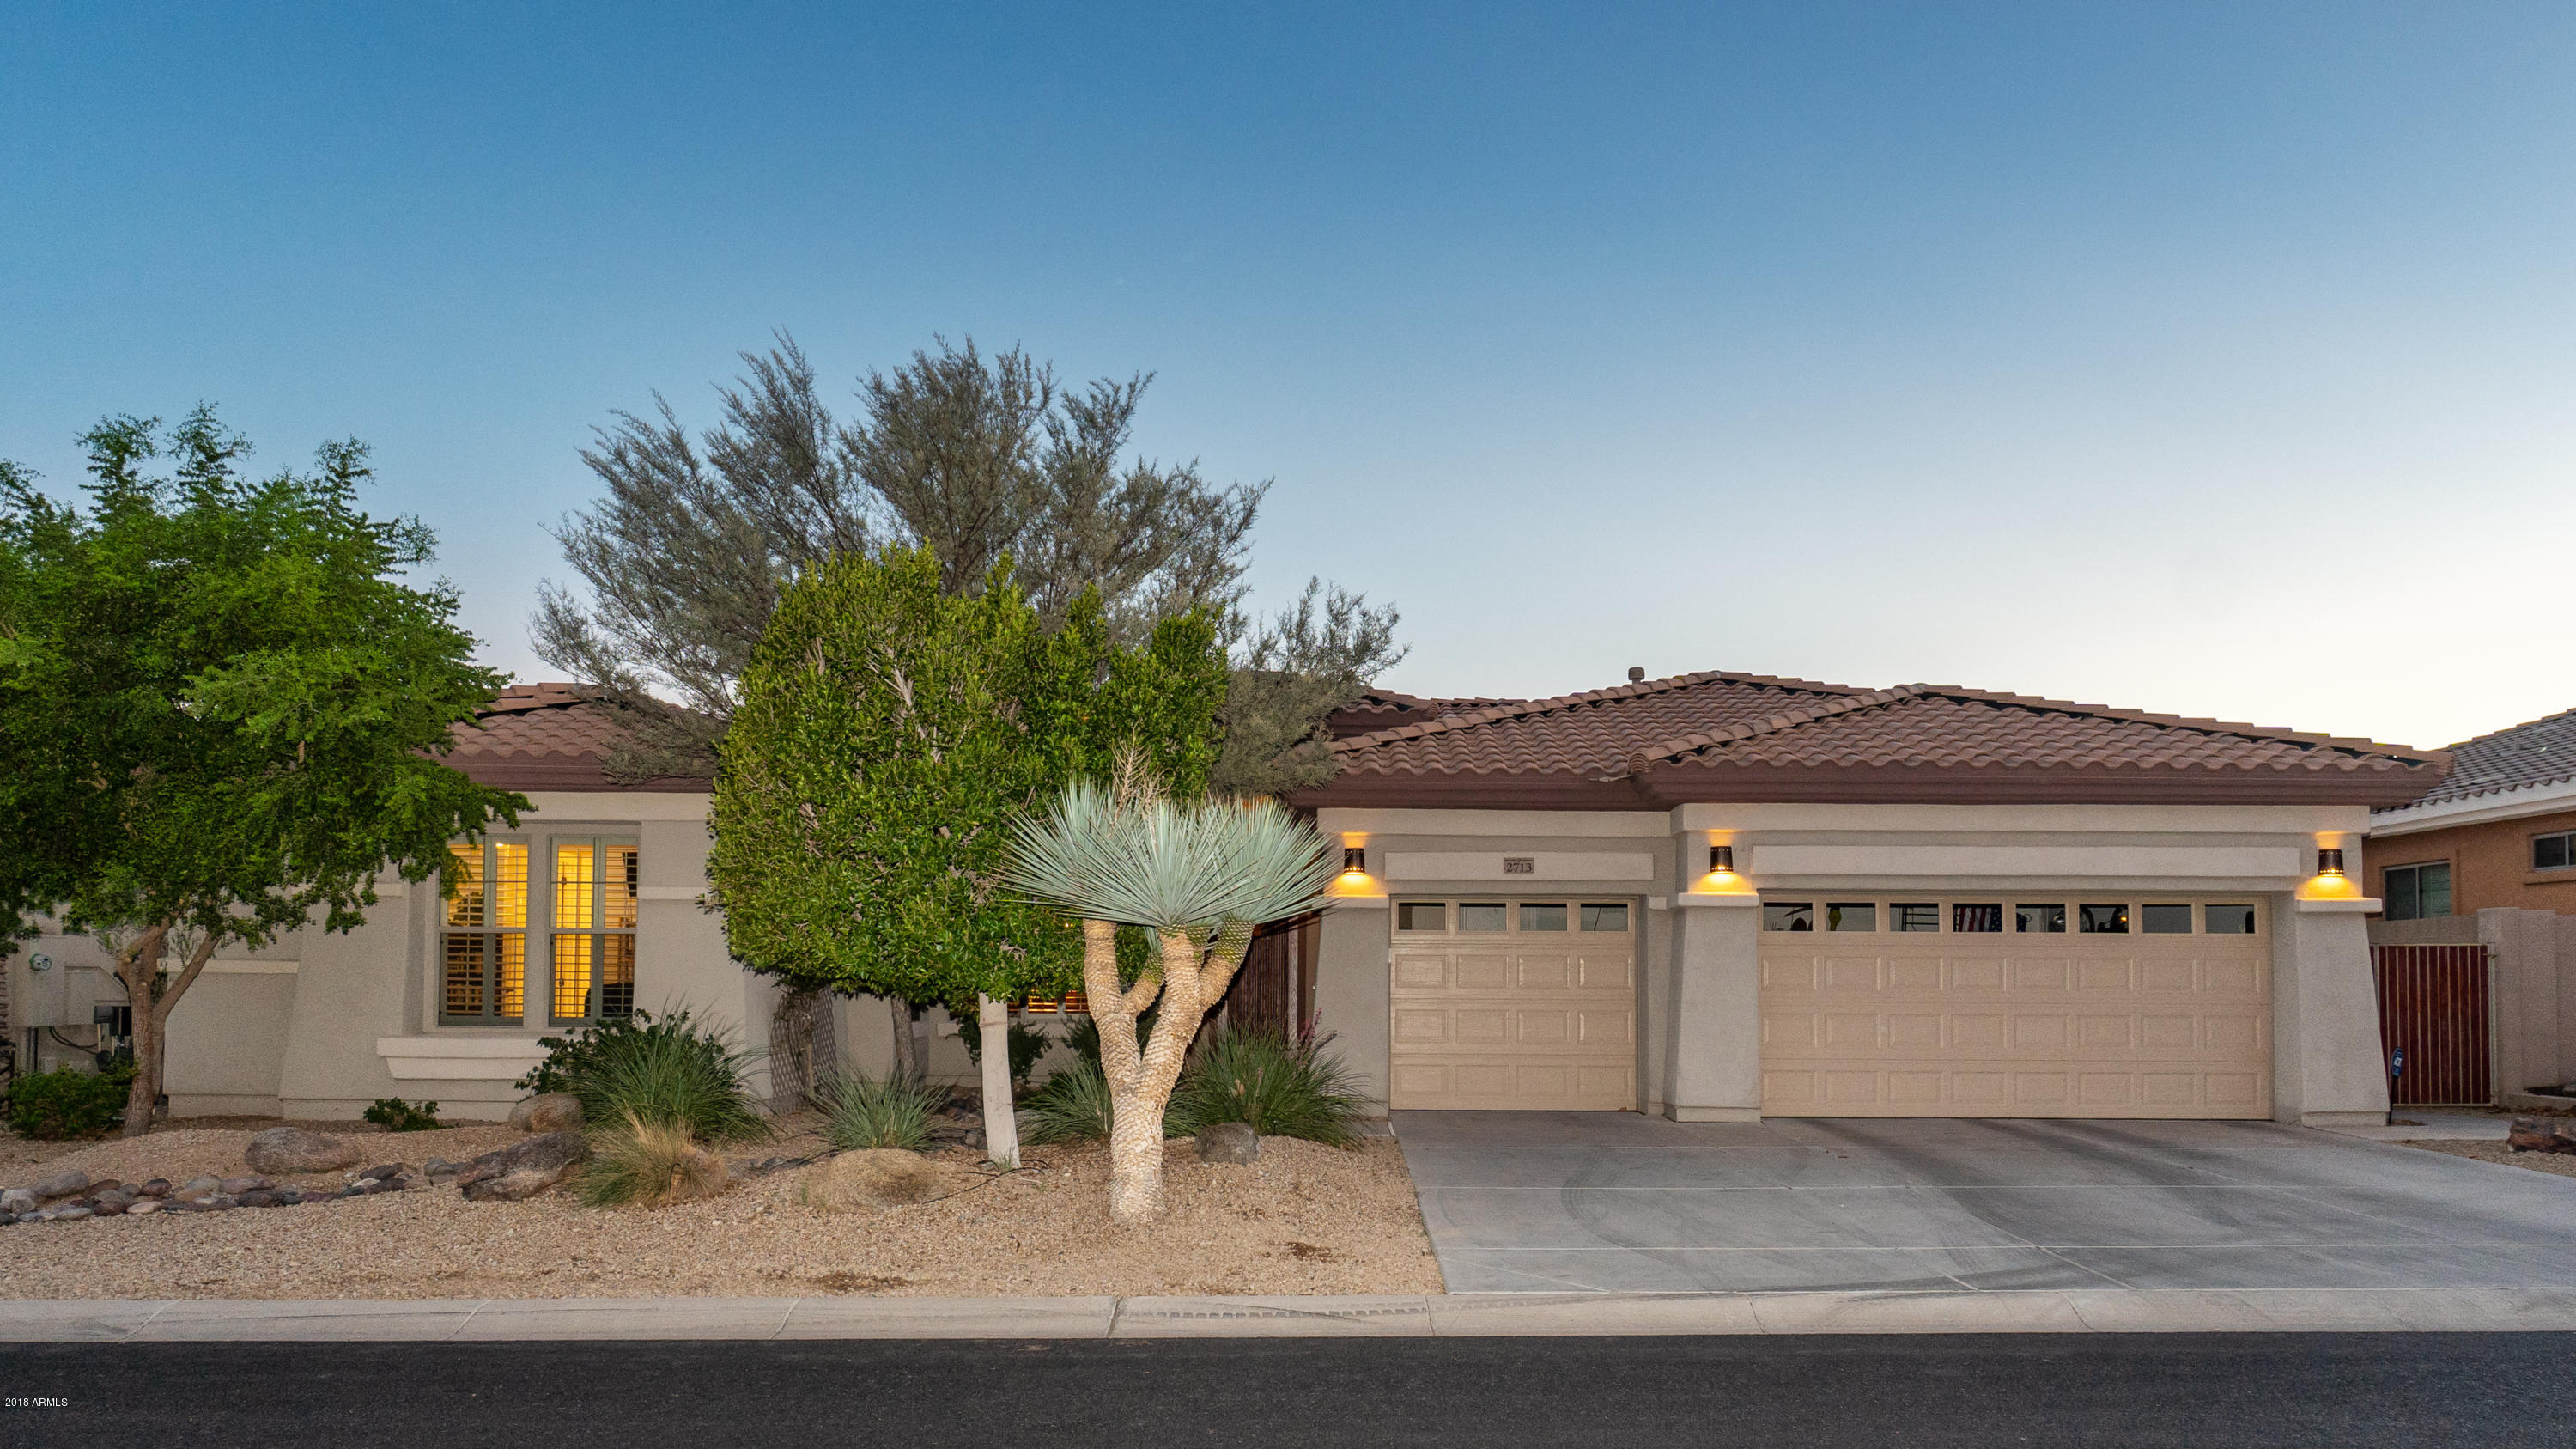 Photo of 2713 W WILDWOOD Drive, Phoenix, AZ 85045